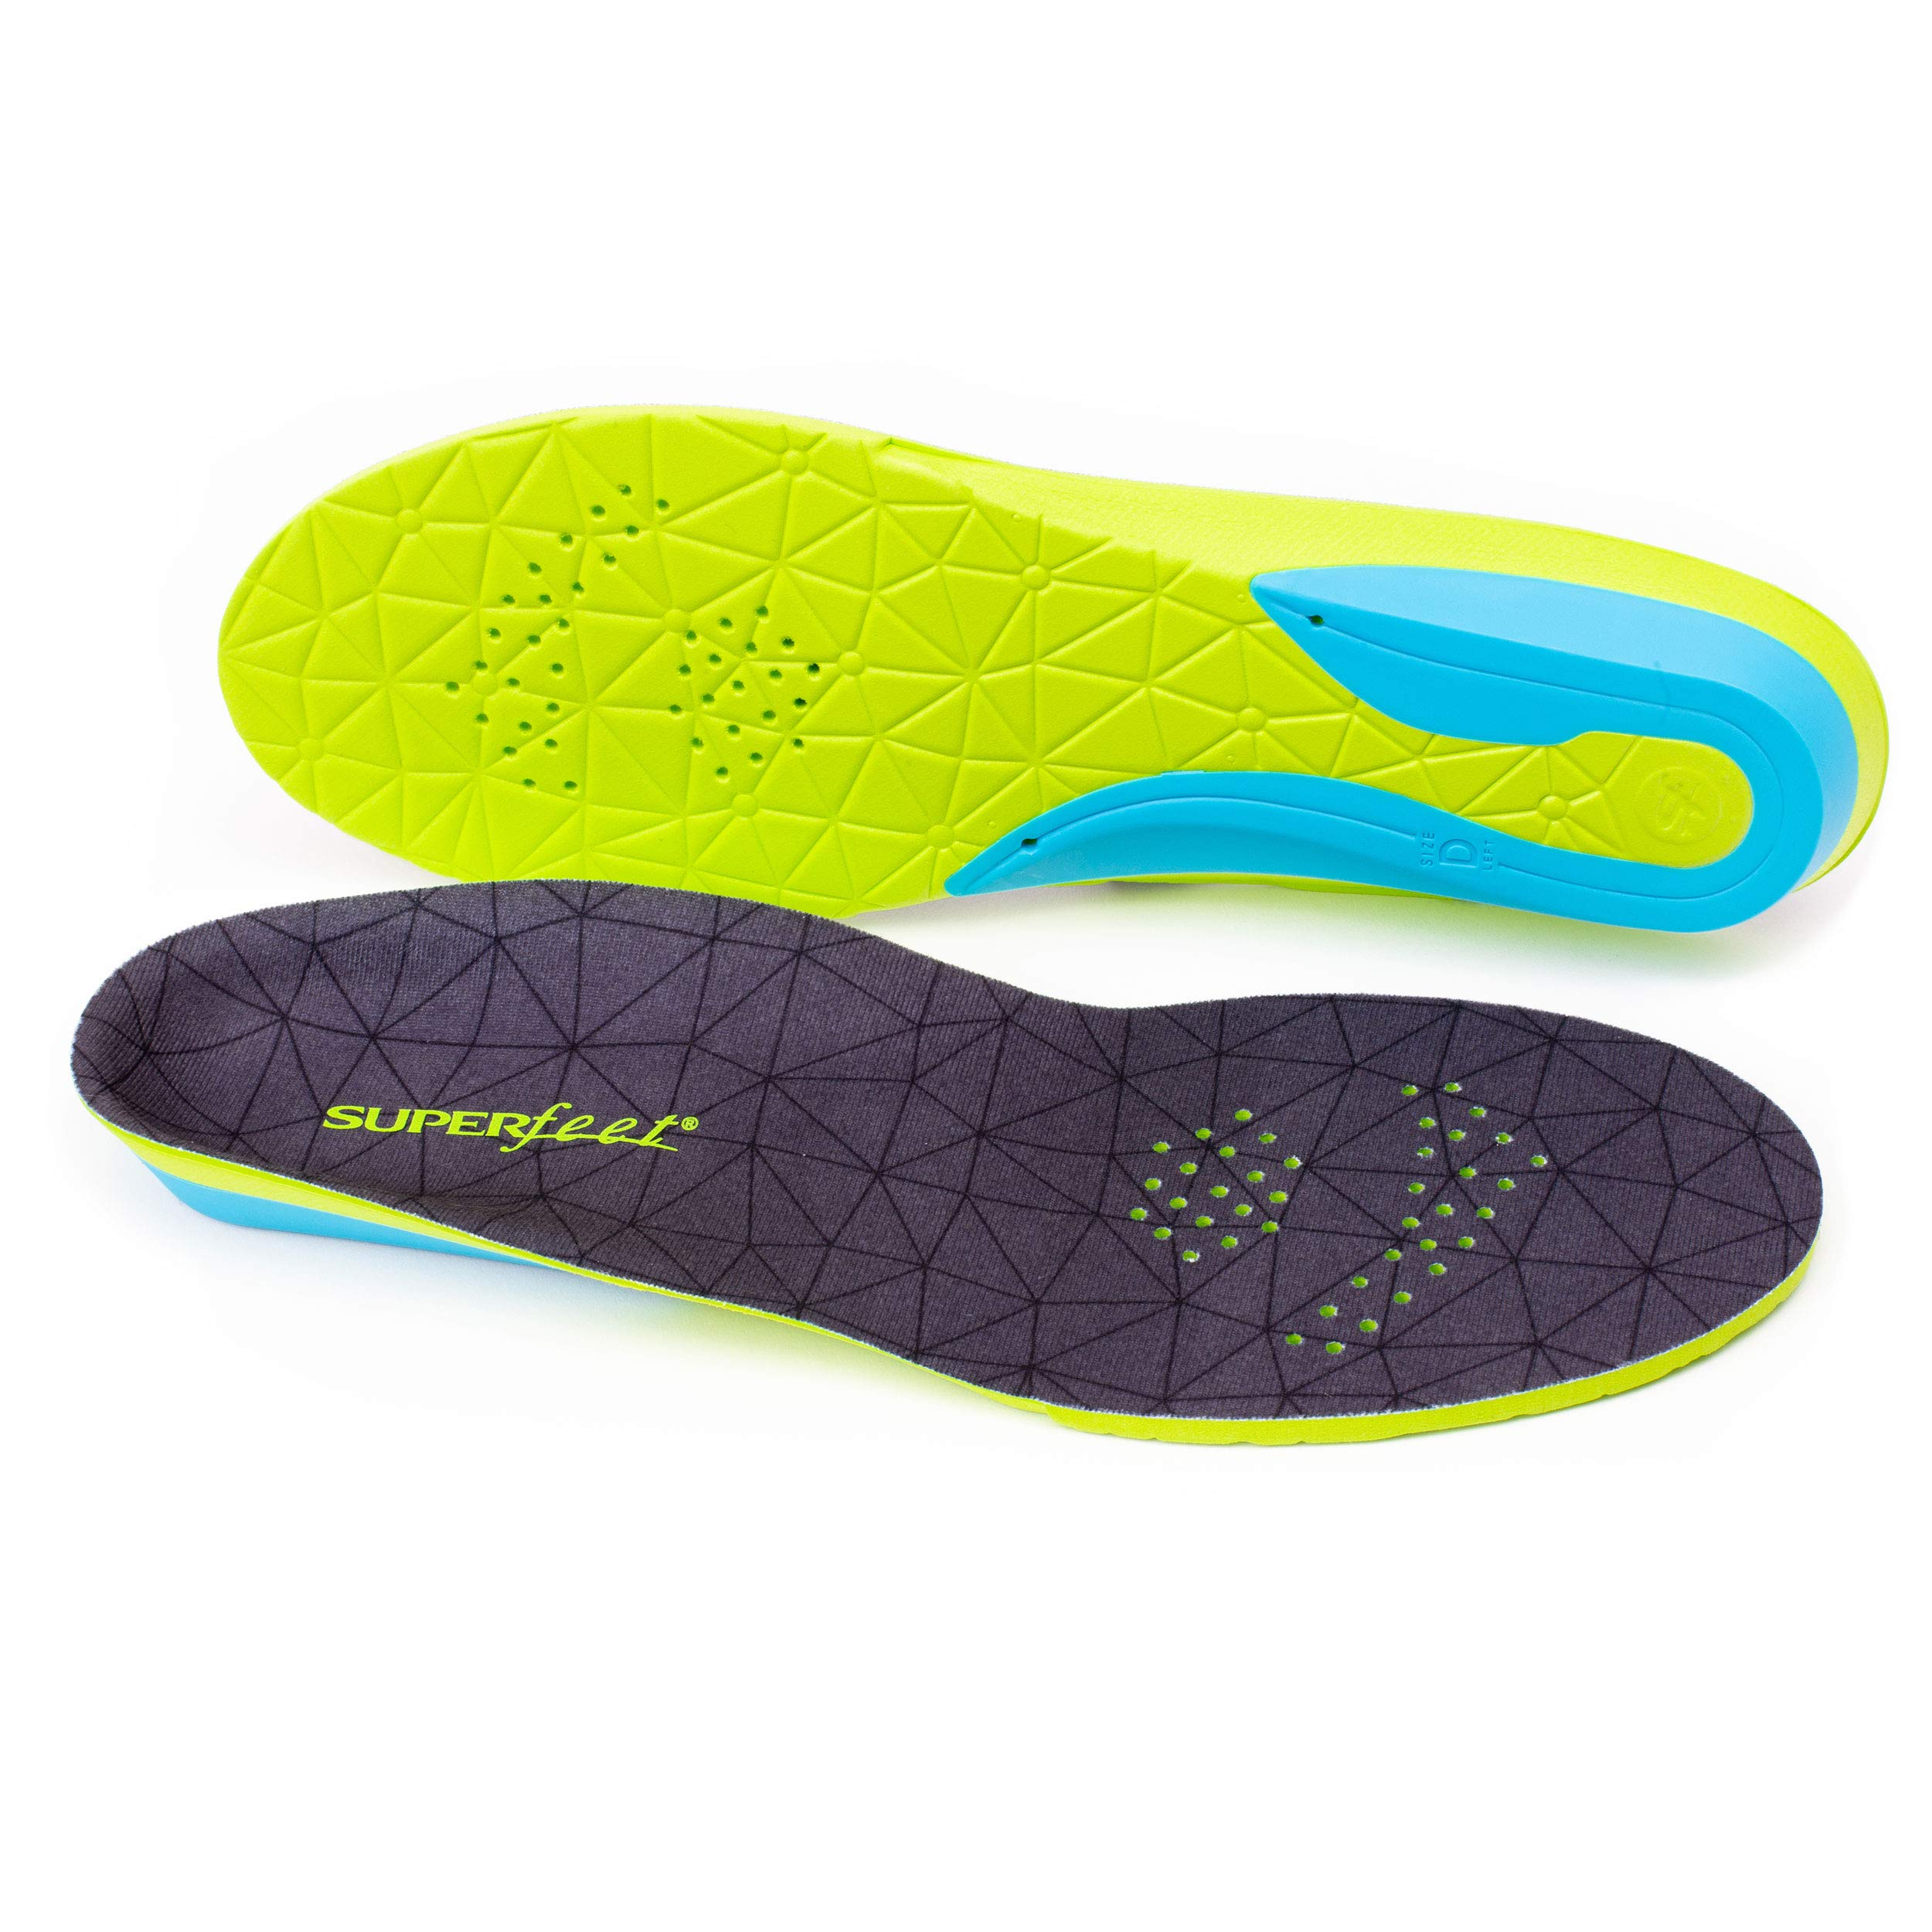 Superfeet FLEXmax, Comfort Insoles for Roomy Athletic Shoe Maximum Cushion and Support, Unisex, Emerald, Medium/D: 8.5-10 Wmns/7.5-9 Mens by Superfeet